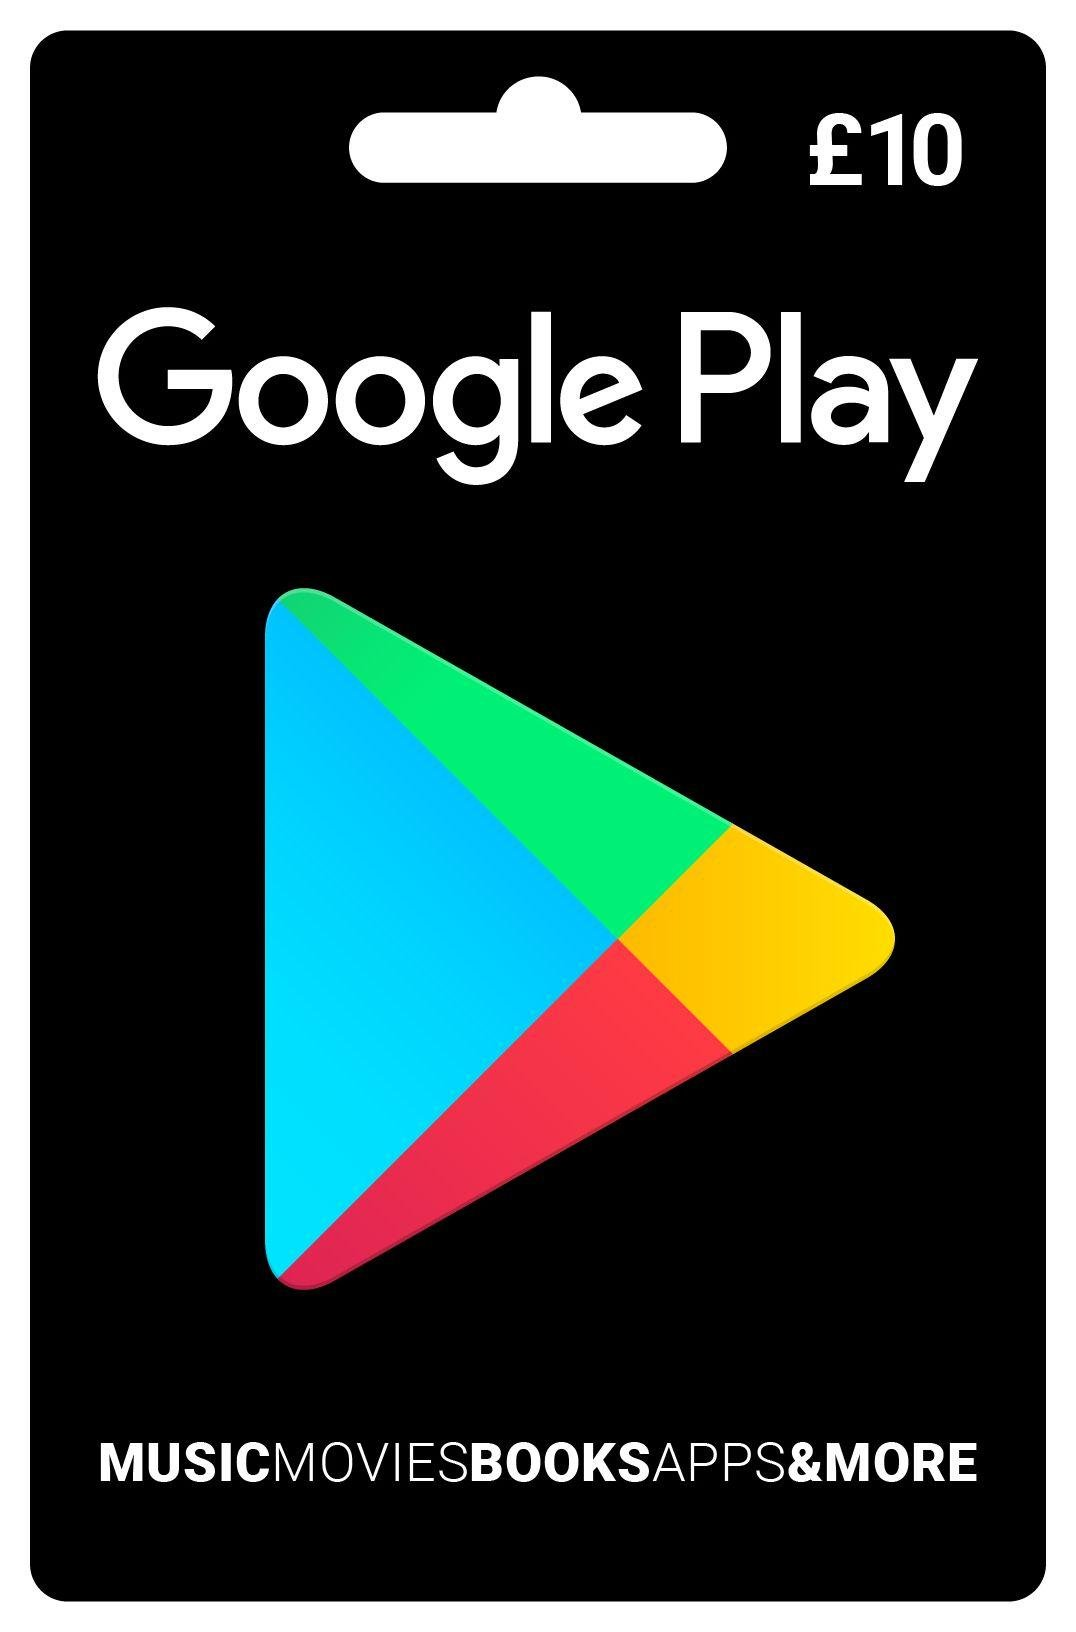 10-google-play-voucher